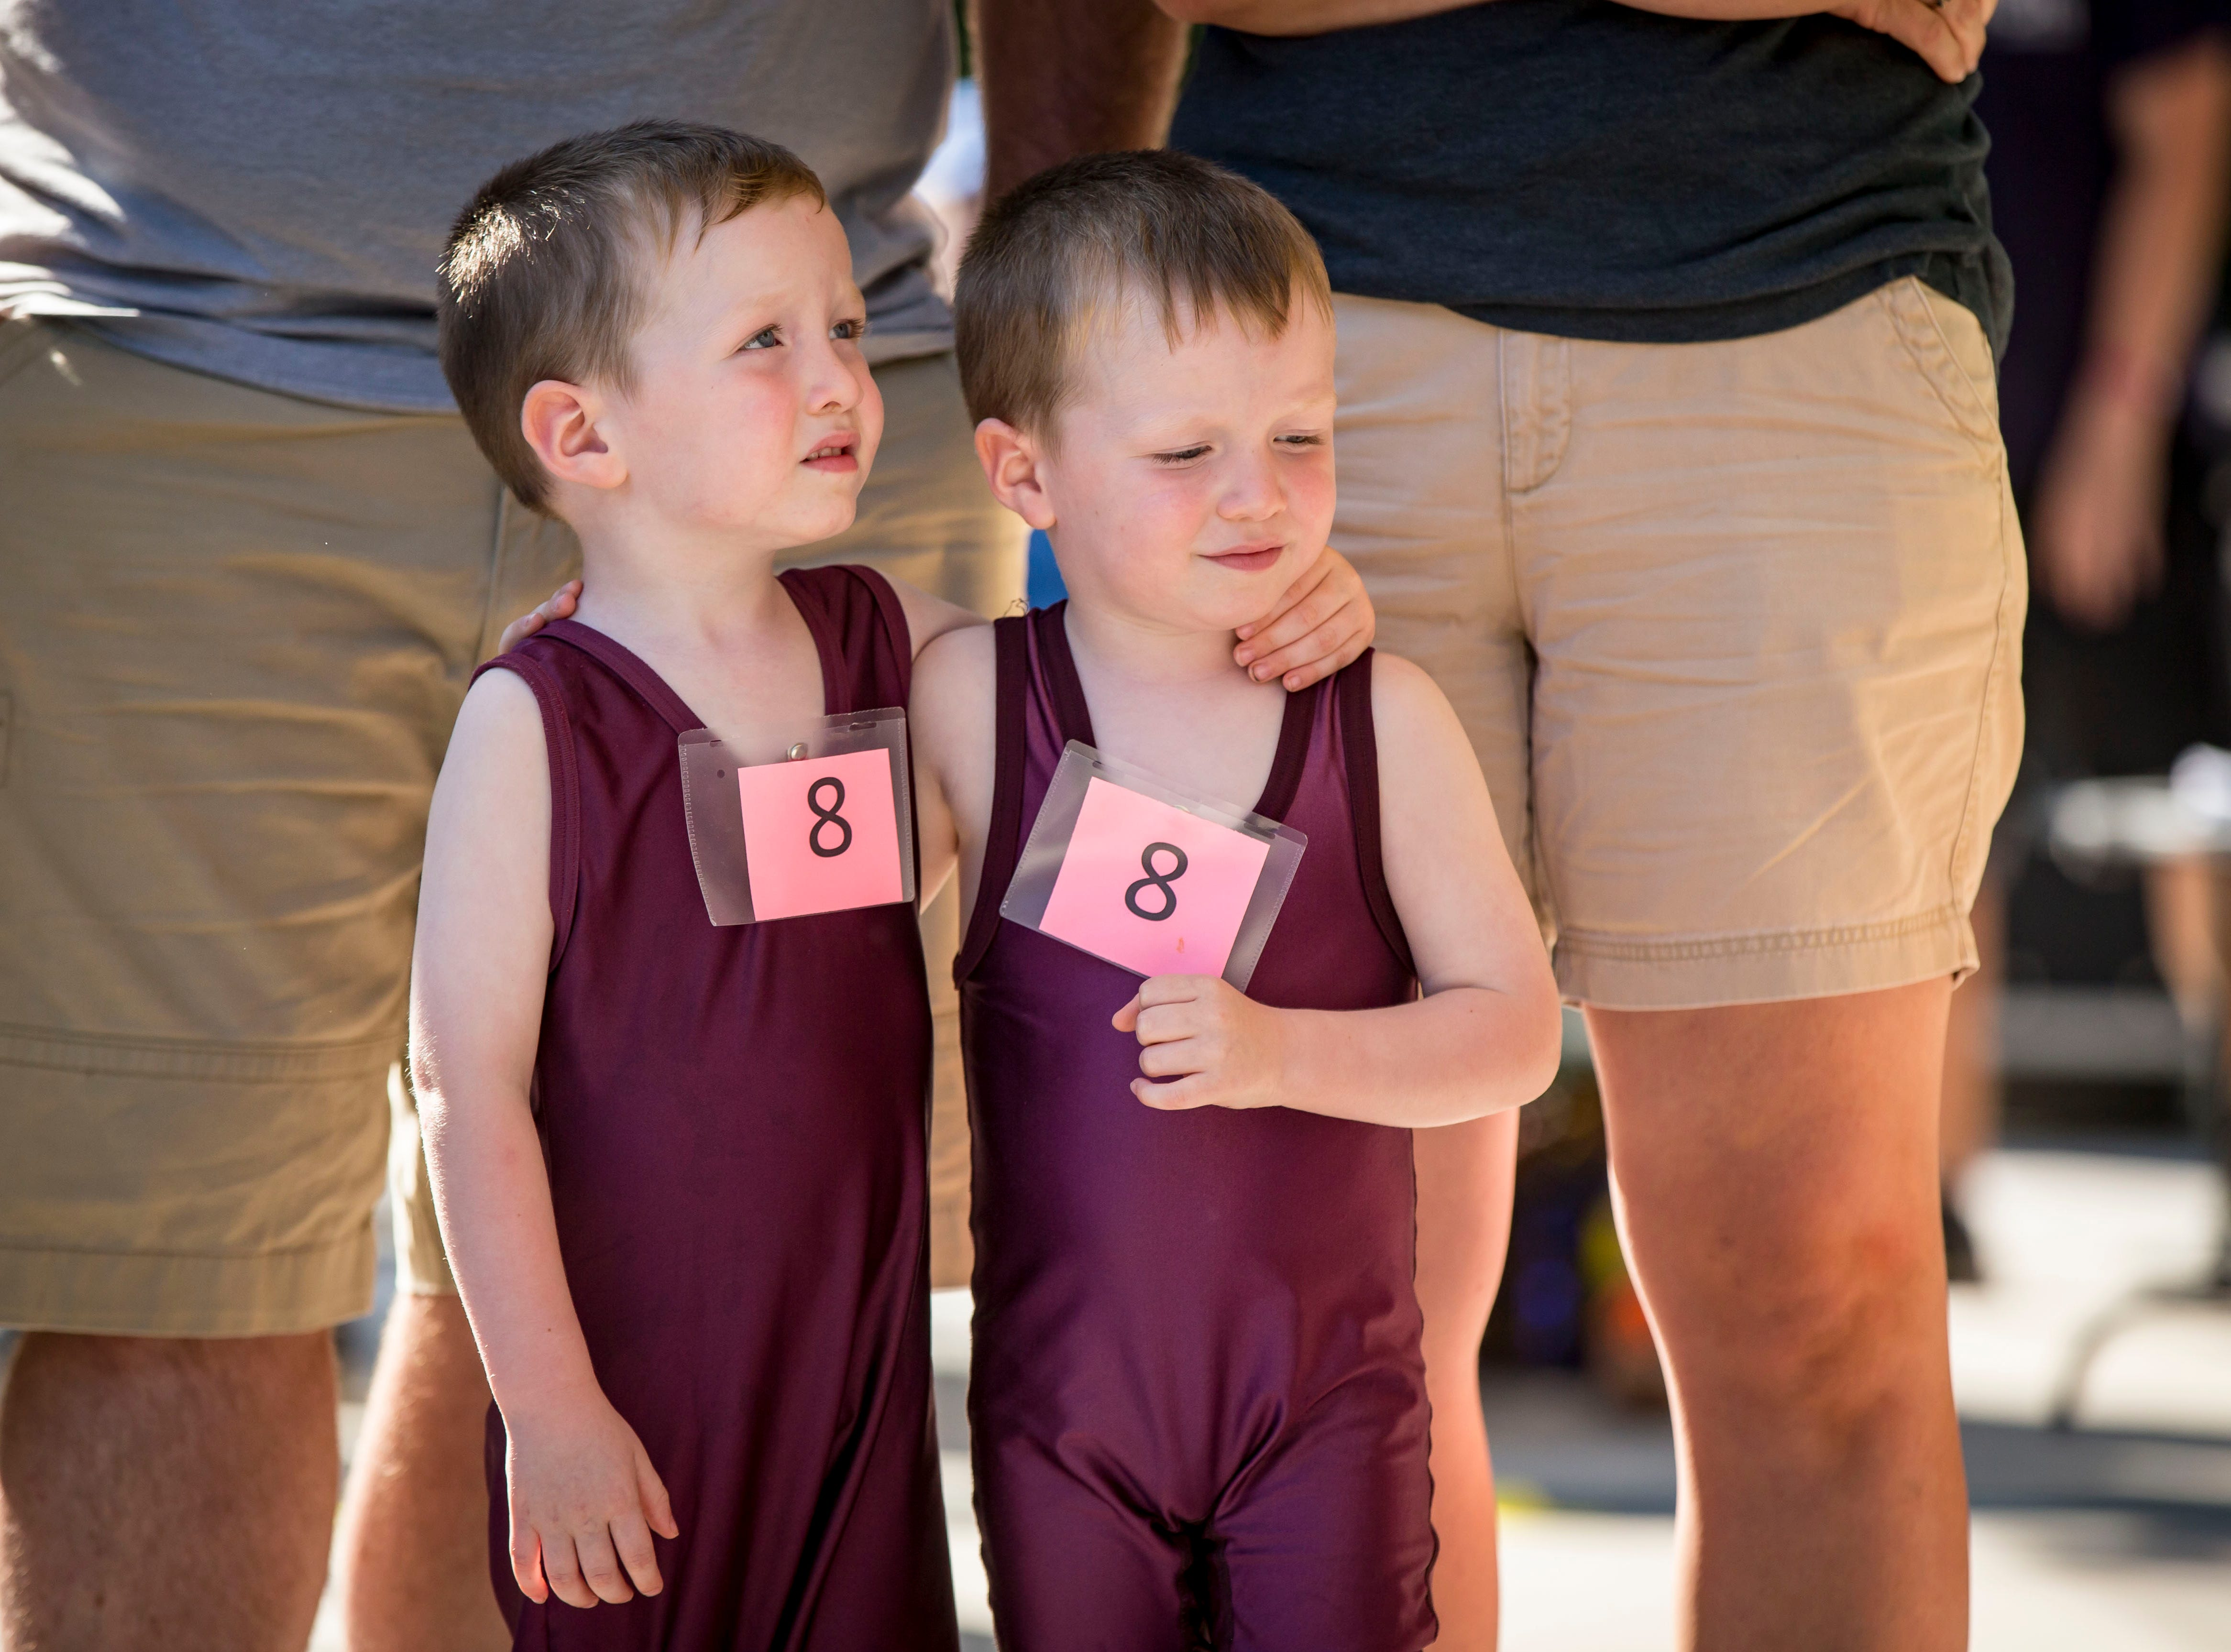 Malcolm, left, and William Dix of Mt. Vernon compete during the Twins, Triplets and More Contest on the Anne and Bill Riley Stage at the 2018 Iowa State Fair in Des Moines Thursday, Aug. 9, 2018.